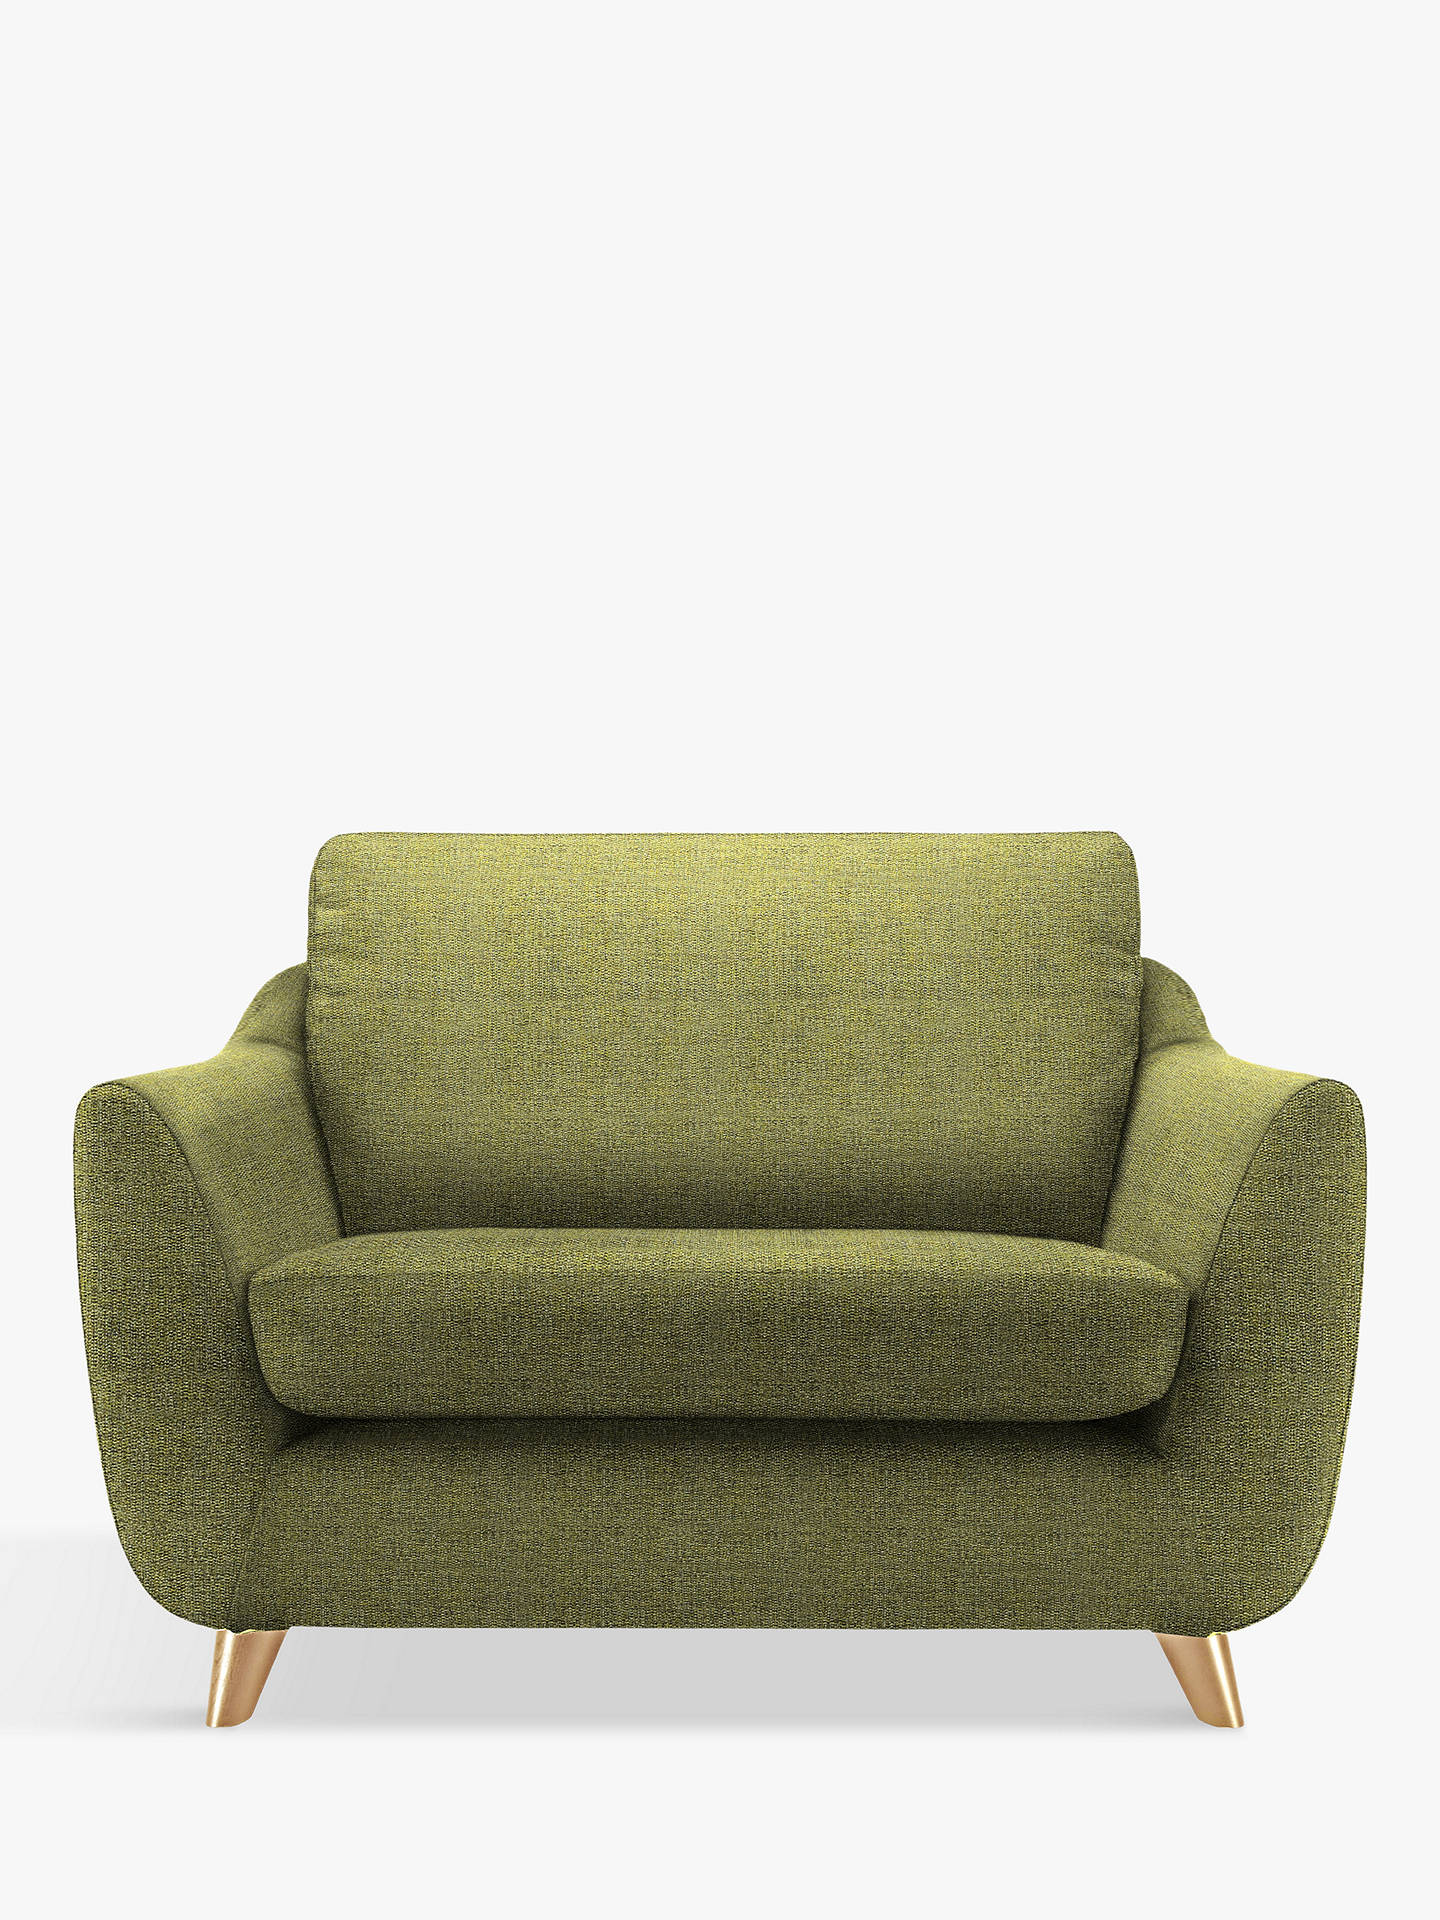 Buy G Plan Vintage The Sixty Seven Snuggler, Marl Green Online at johnlewis.com